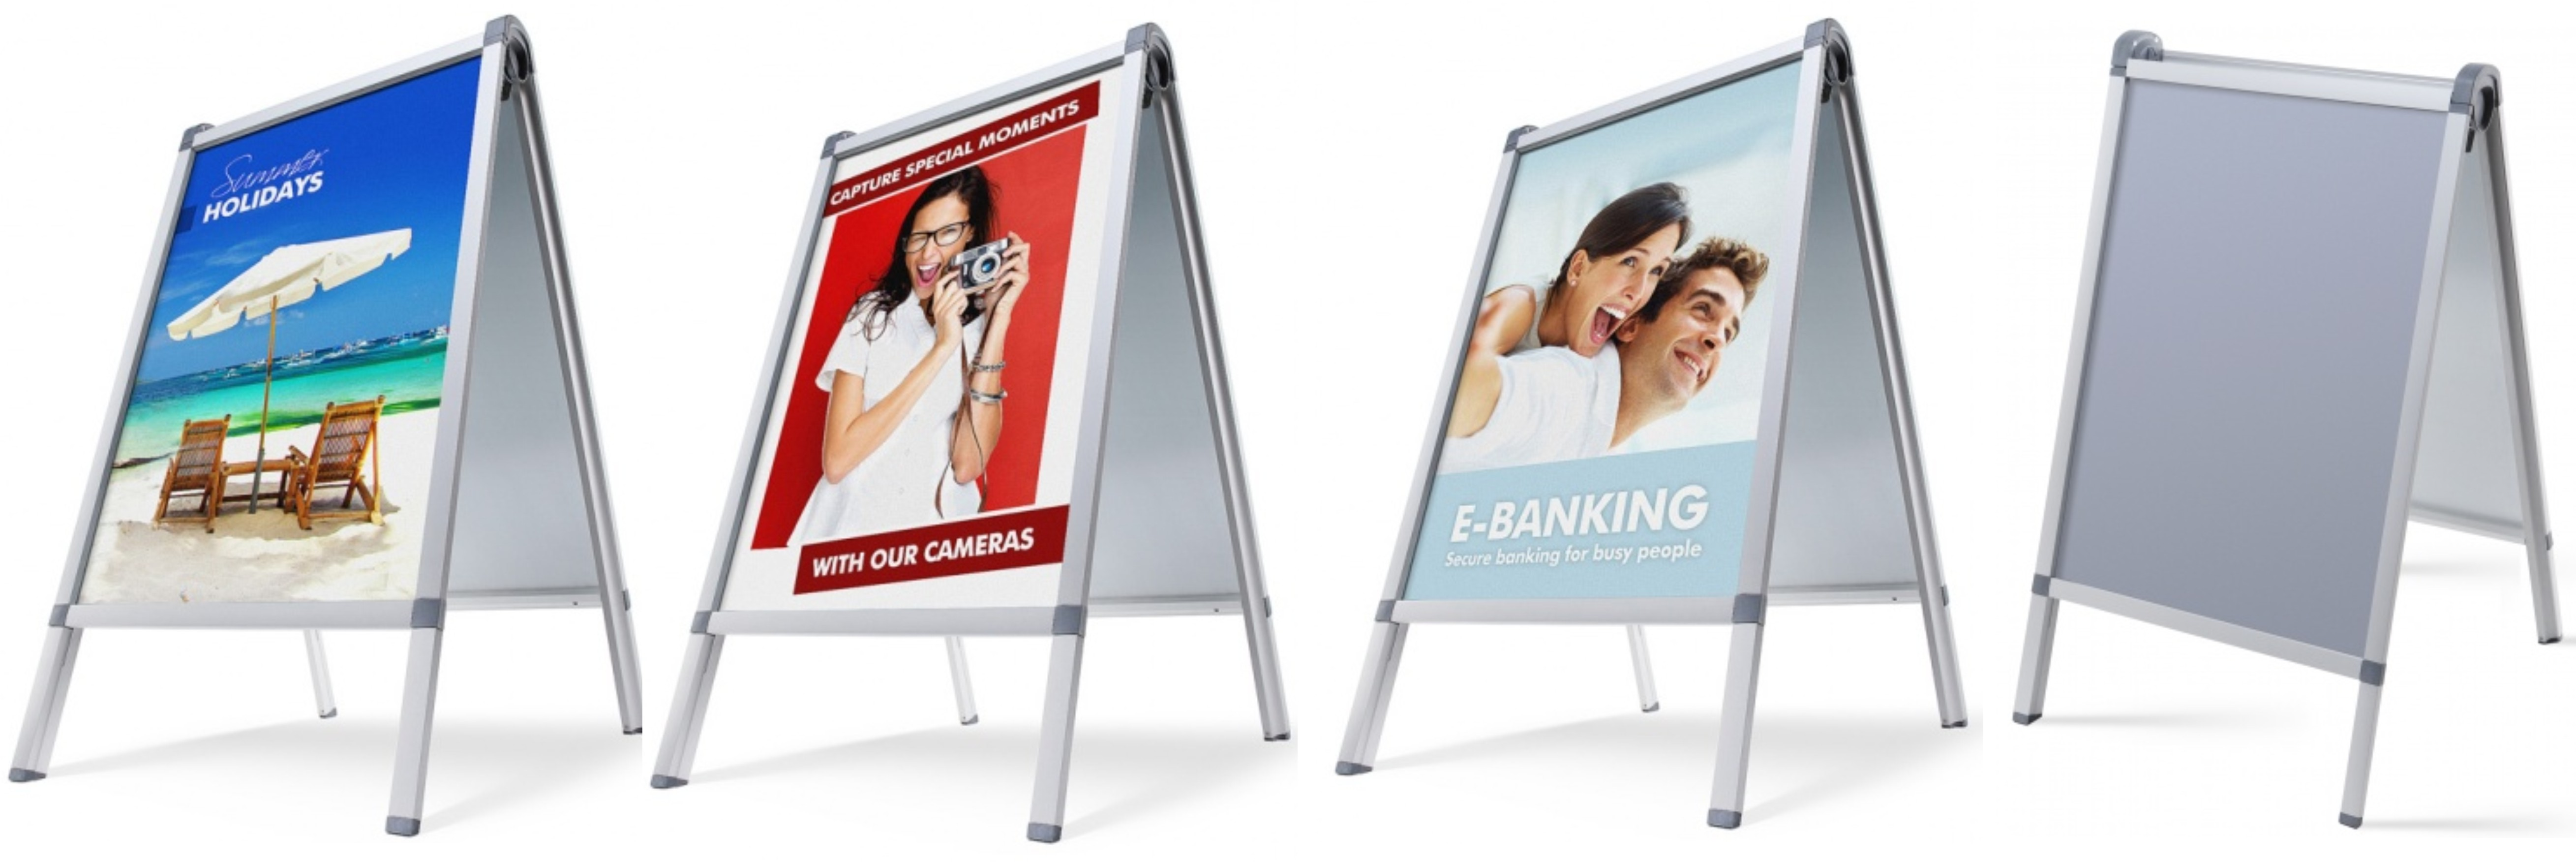 A board poster design - A1 Size Premium Pavement Sign Poster Holder